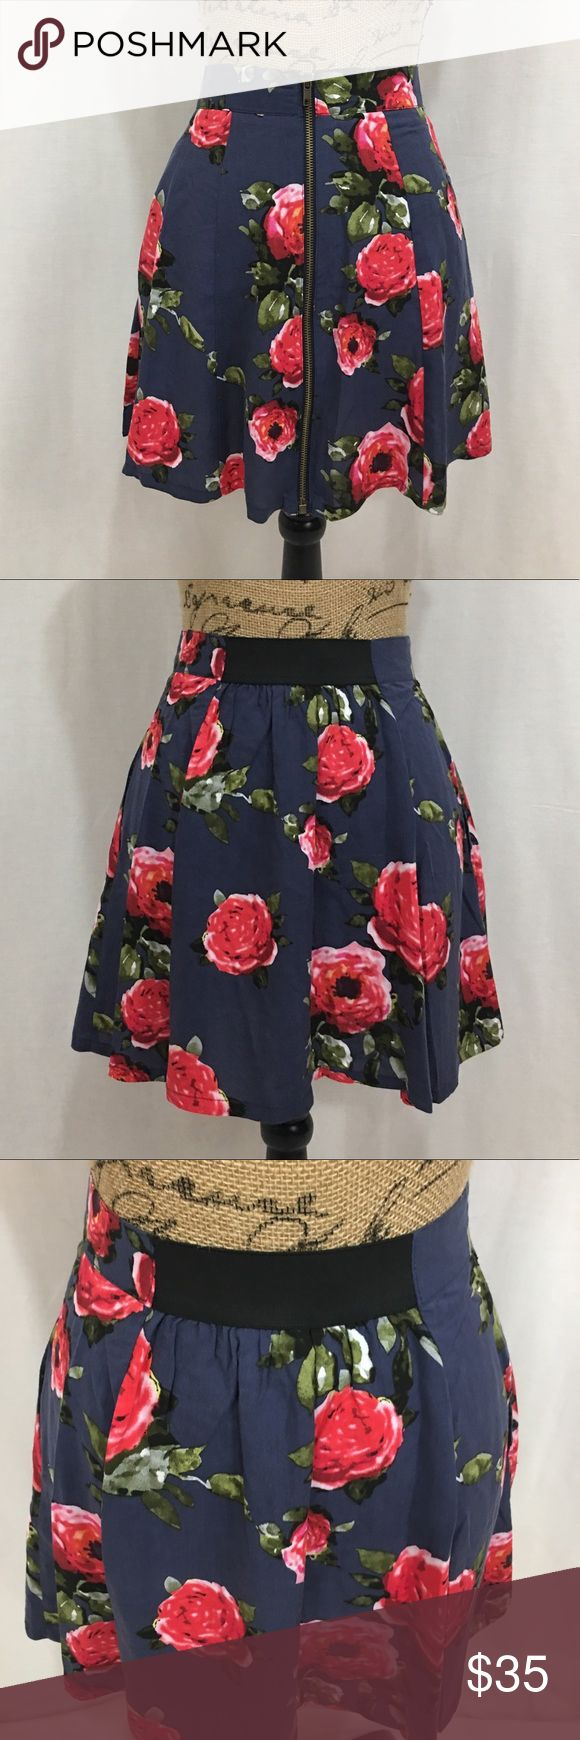 """UO pins and needles rose floral zip up skirt Super cute. NWOT. Never worn. Fully zip up front. Stretchy band section in back. size small. Pins and needles is sold by urban outfitters I purchased this there. Pockets. 100% viscose. Navy blue with roses/floral. Green& red/pink colors too measurements are approx in inches laying flat. W-13 H-23 length-16.5 small fabric flaw """"line"""" seen pic 8   🌹no trades 🌹discounts on bundles of 2+  🌹1000 items listed, take a peak!  🌹suggested user, posh…"""